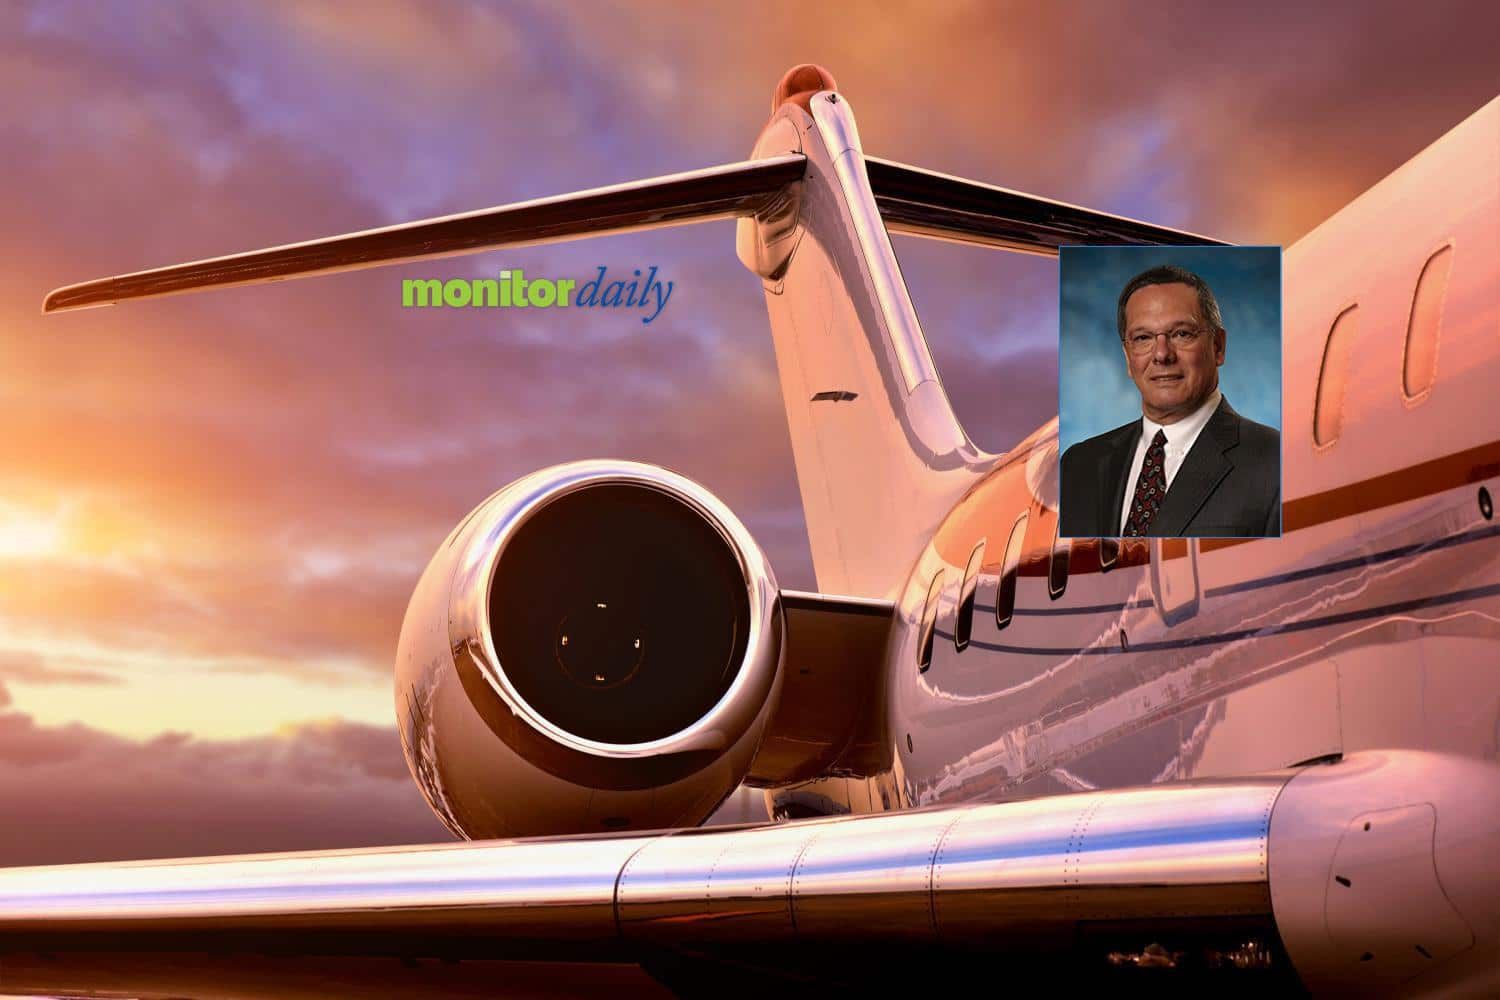 JetLoan Capital Appoints Kleinman Director of Midwest Sales